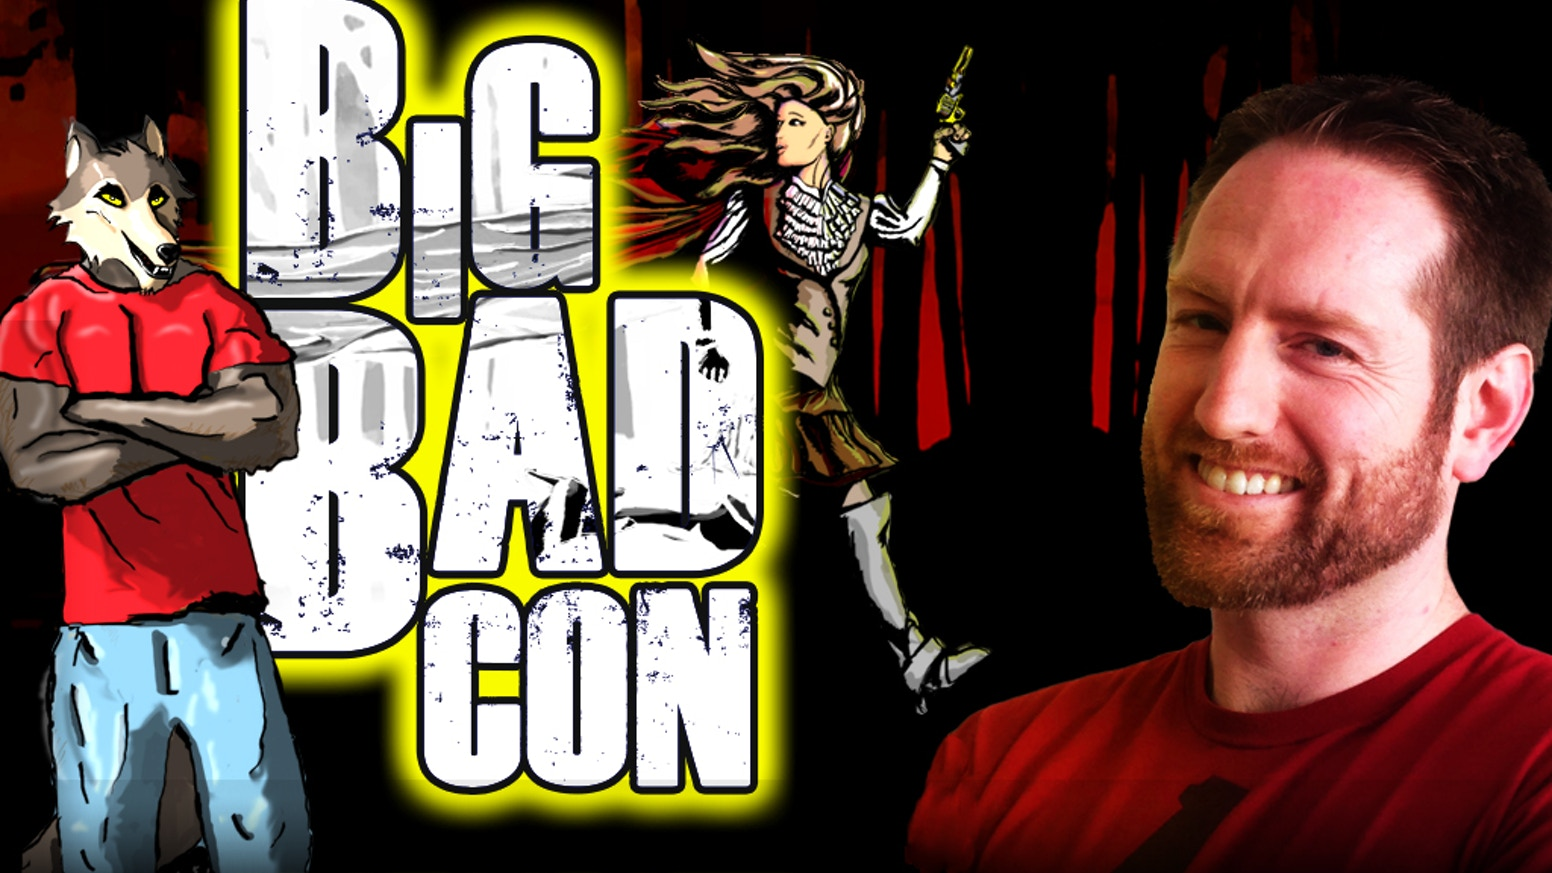 Big Bad Con is happening this October 16-18 in Oakland, CA.